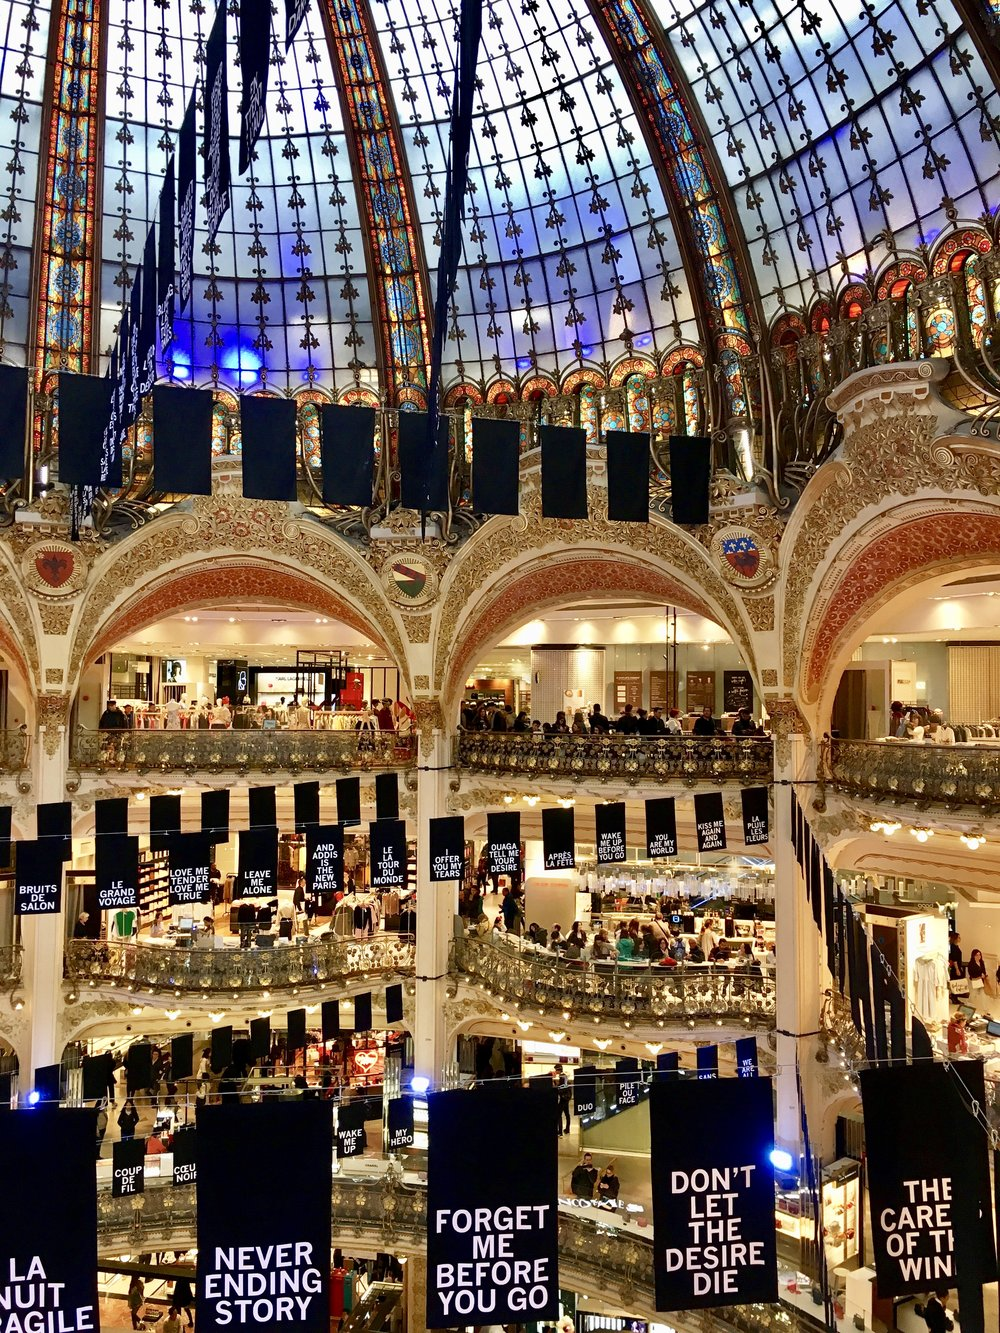 The interior of Galleries Lafayette department store.